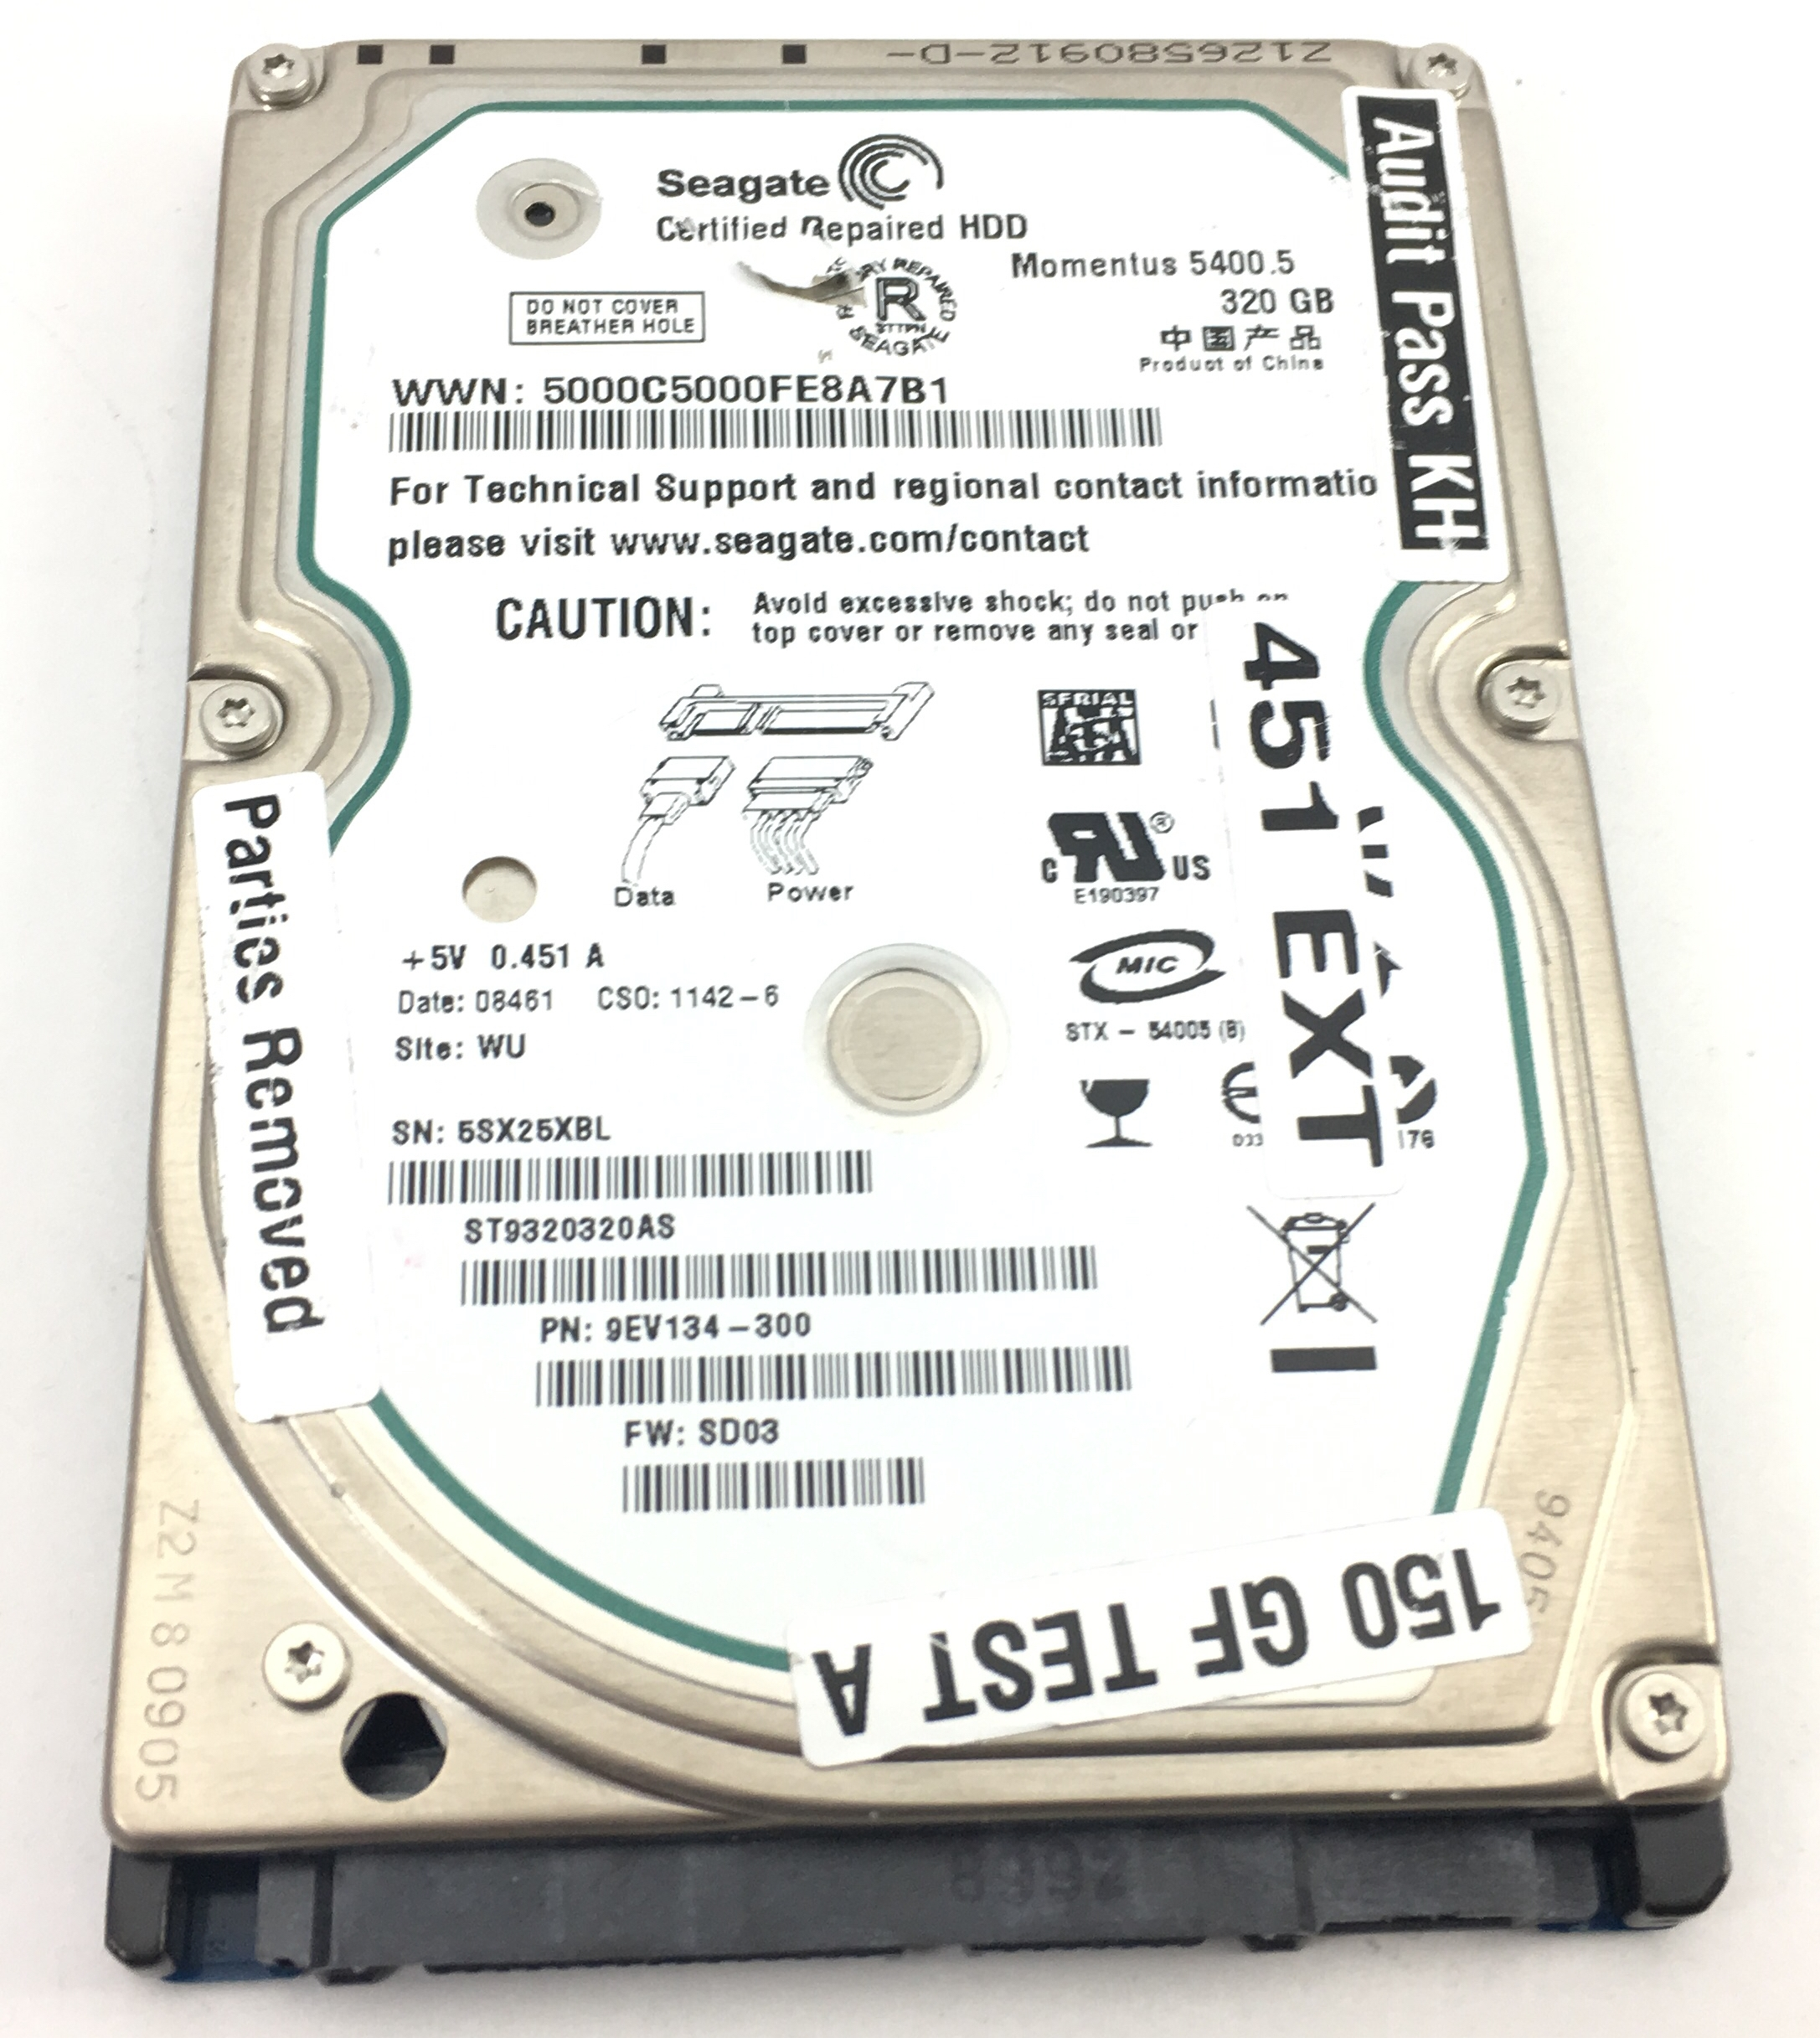 Seagate Momentus 320GB 5.4K SATA 2.5'' Hard Drive (ST9320320AS)